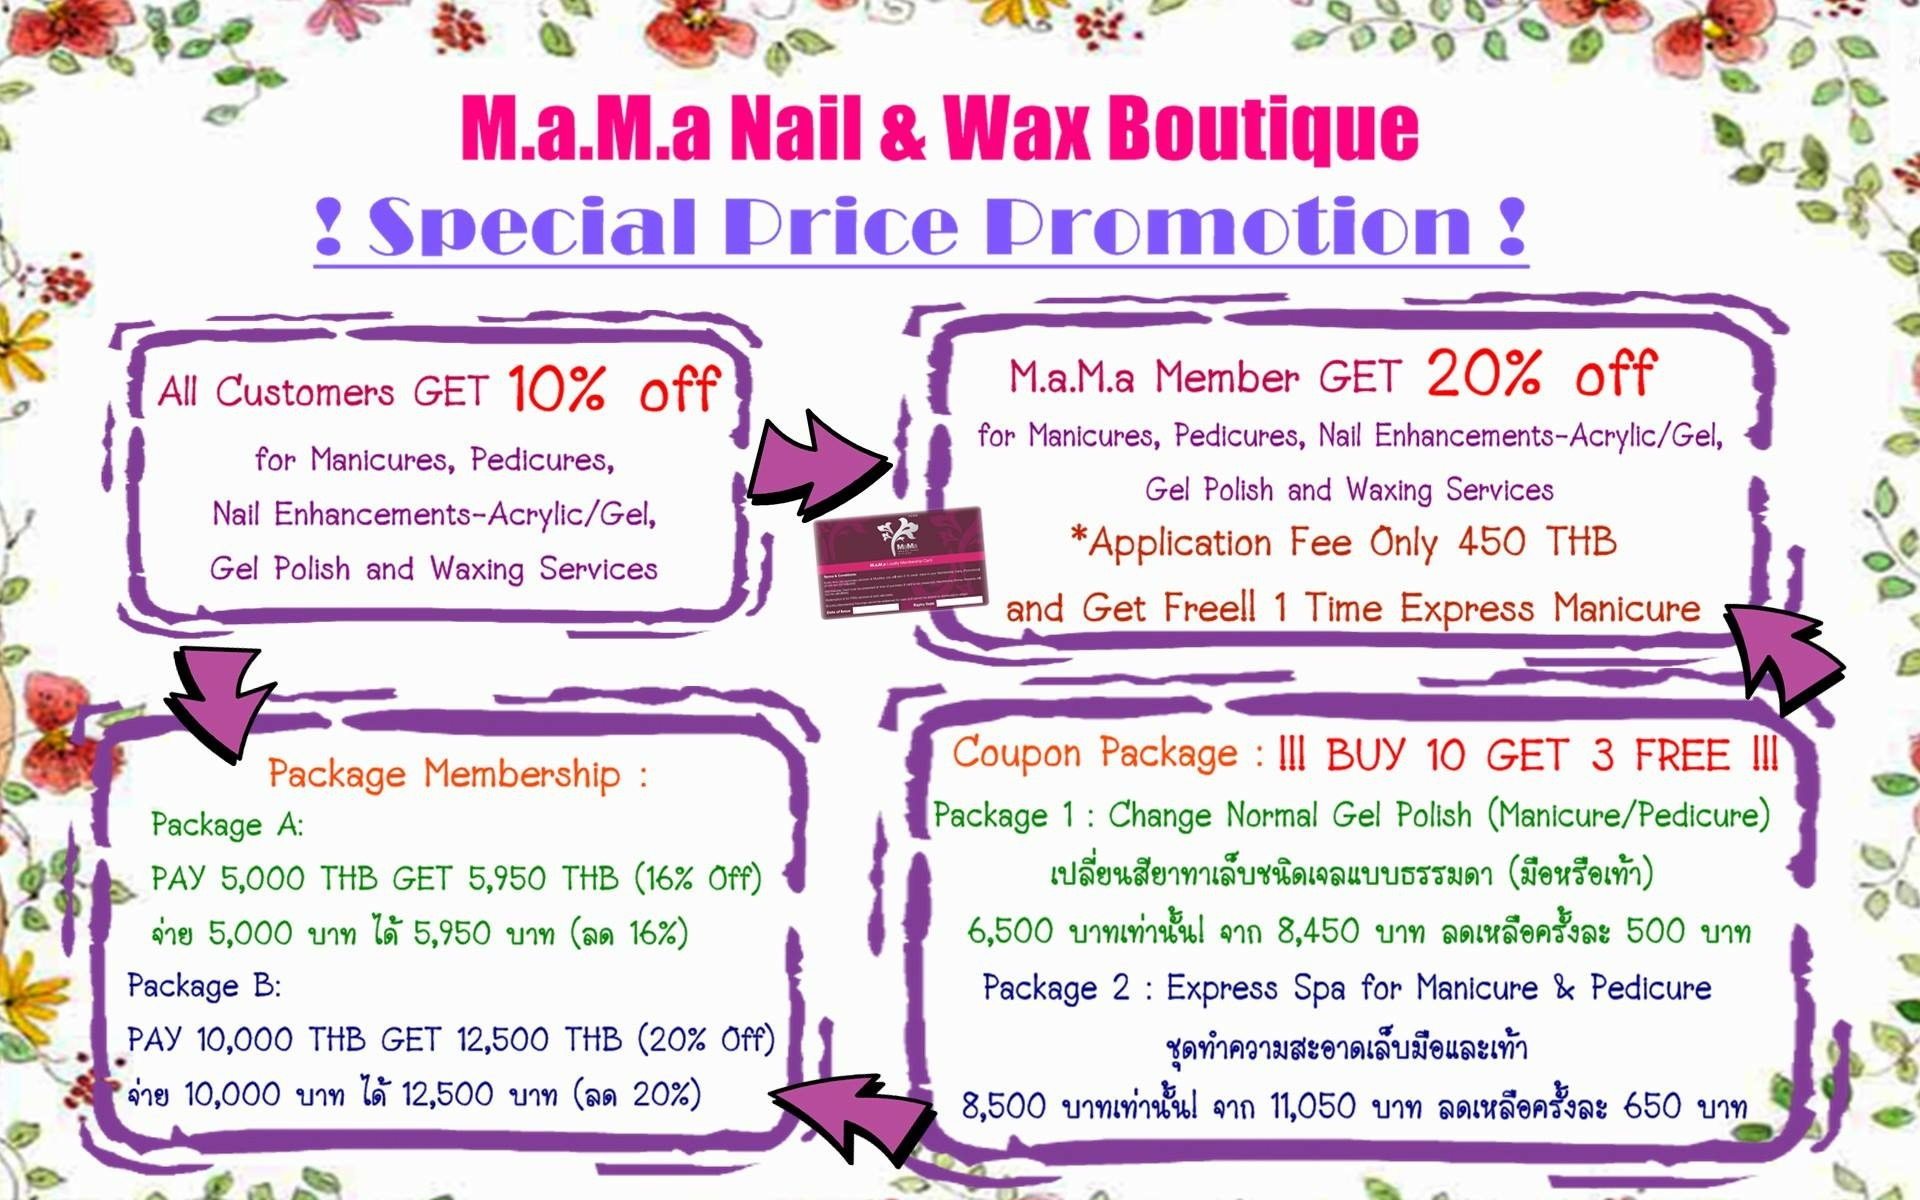 M.a.M.a. Nail and Wax Boutique on Ground Floor